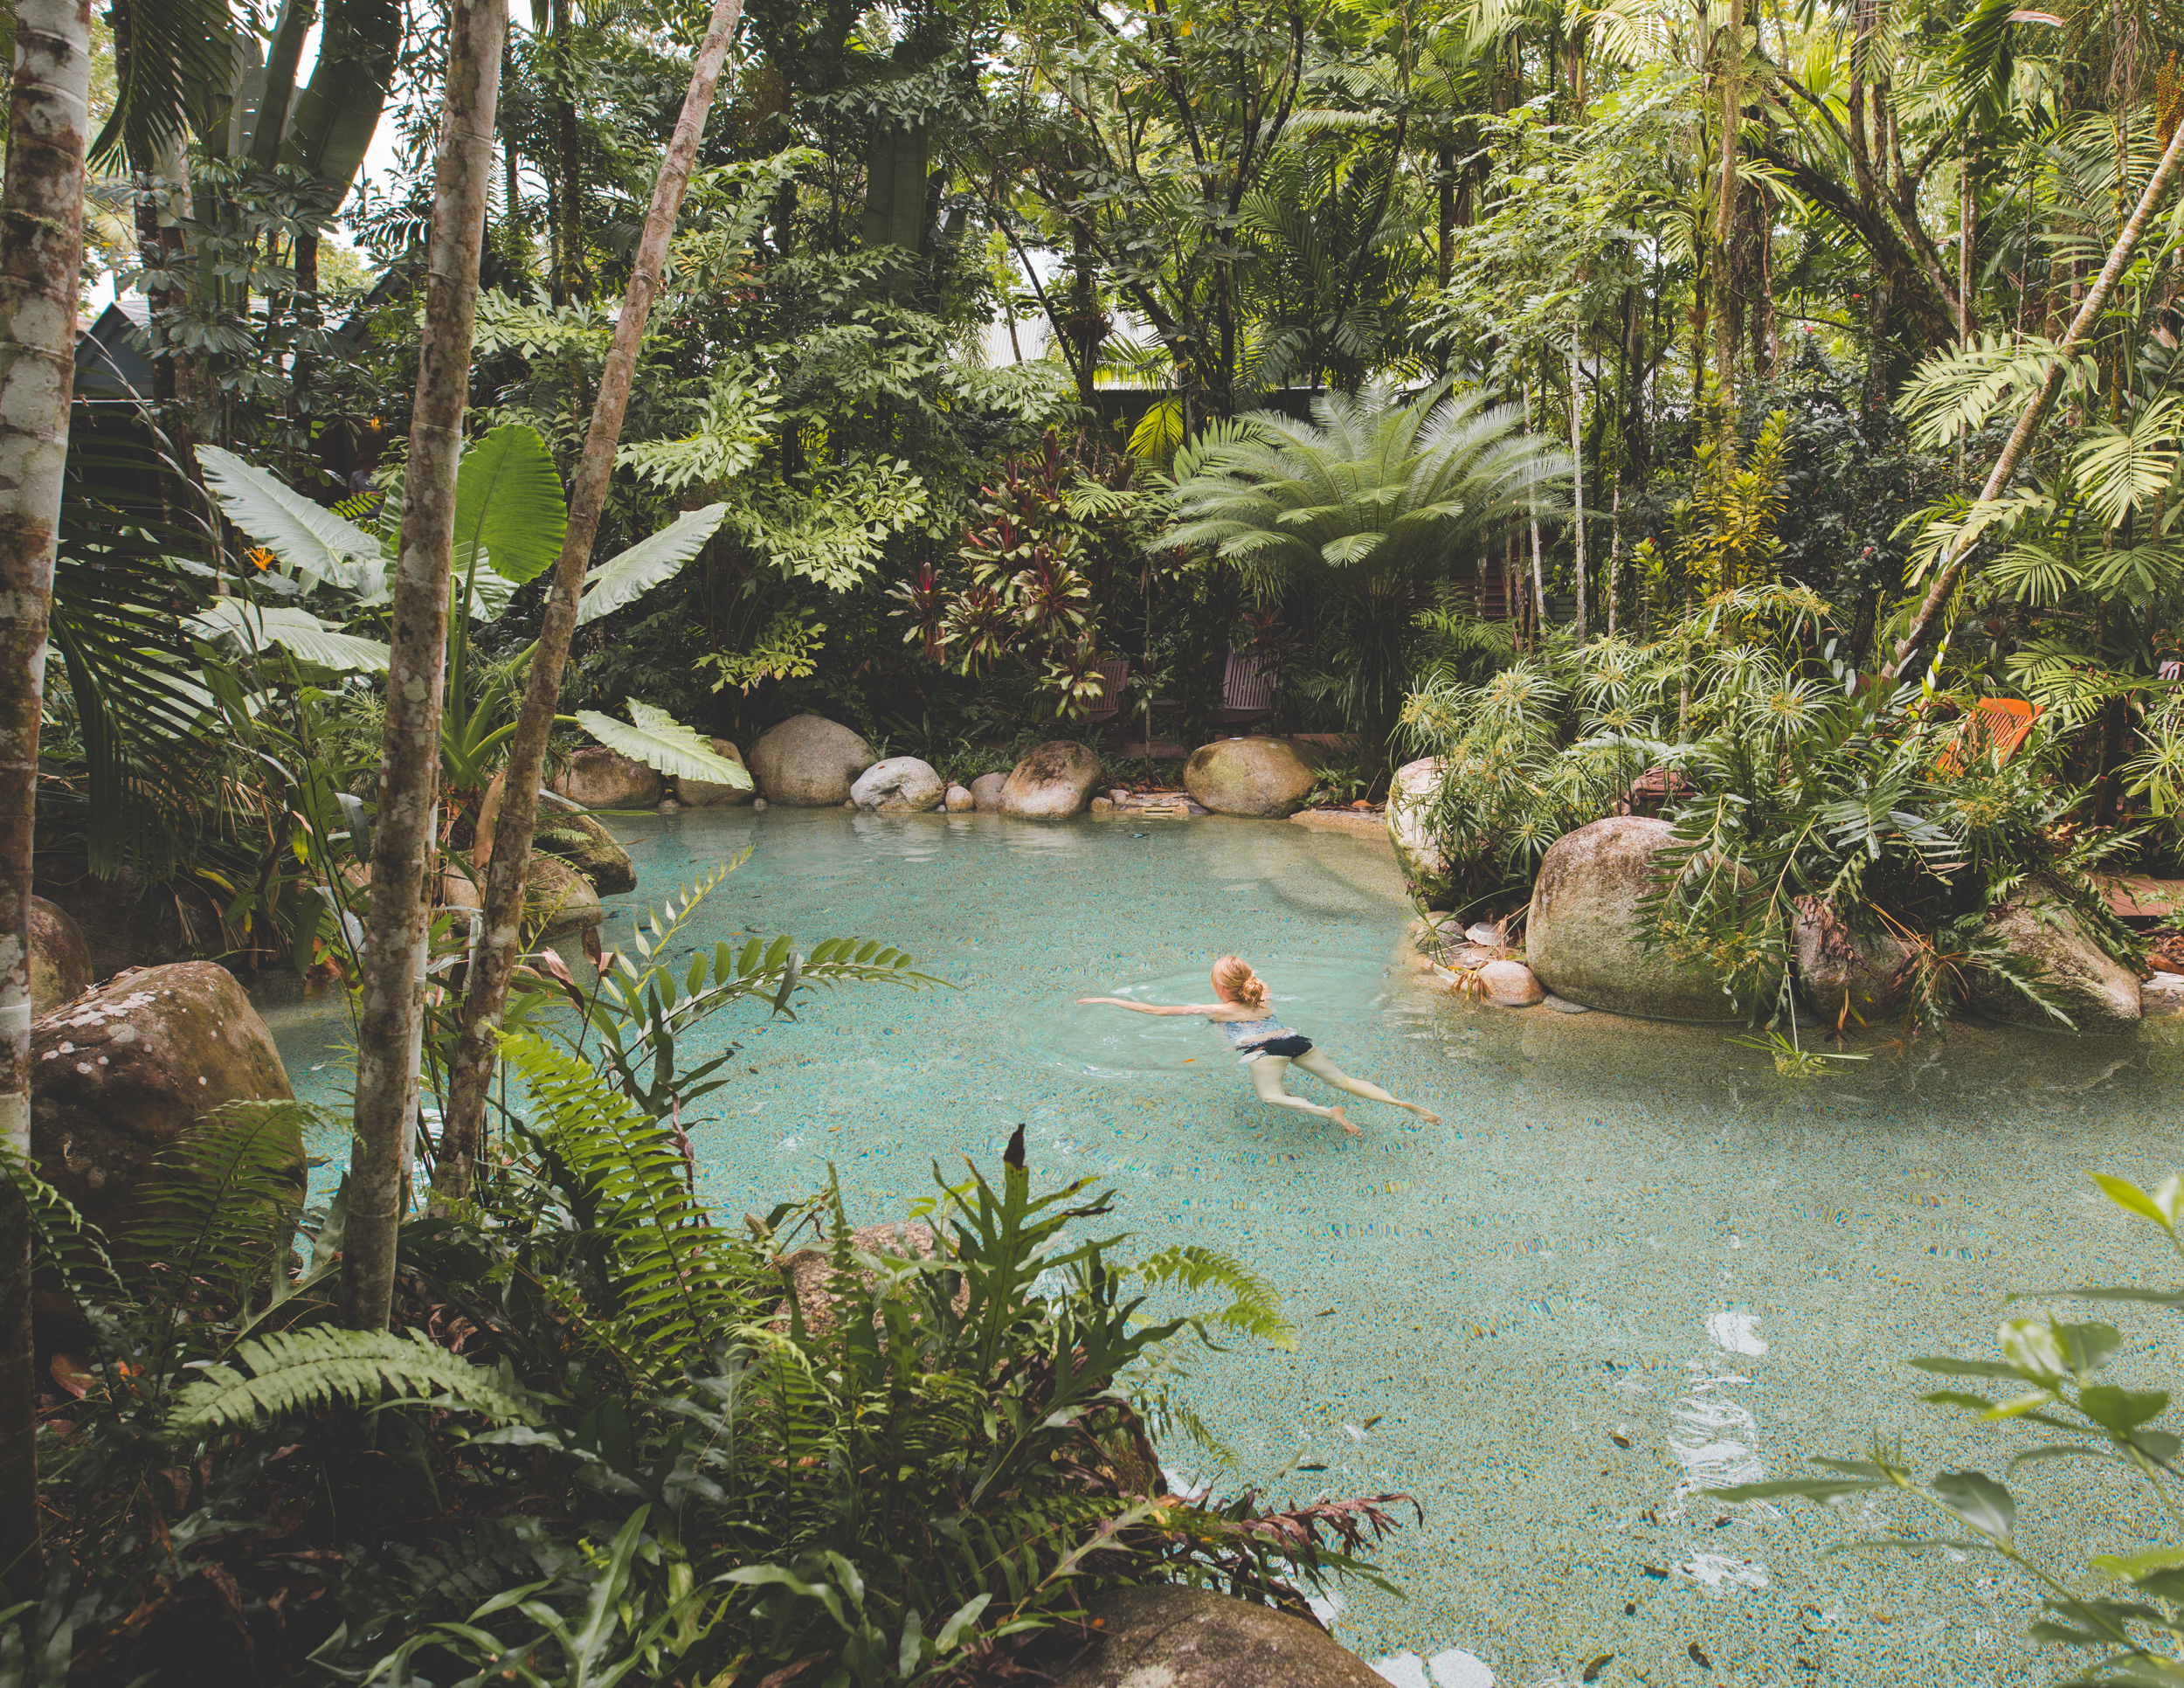 Top 5 unique hotels in Australia: The pool at Silky Oaks